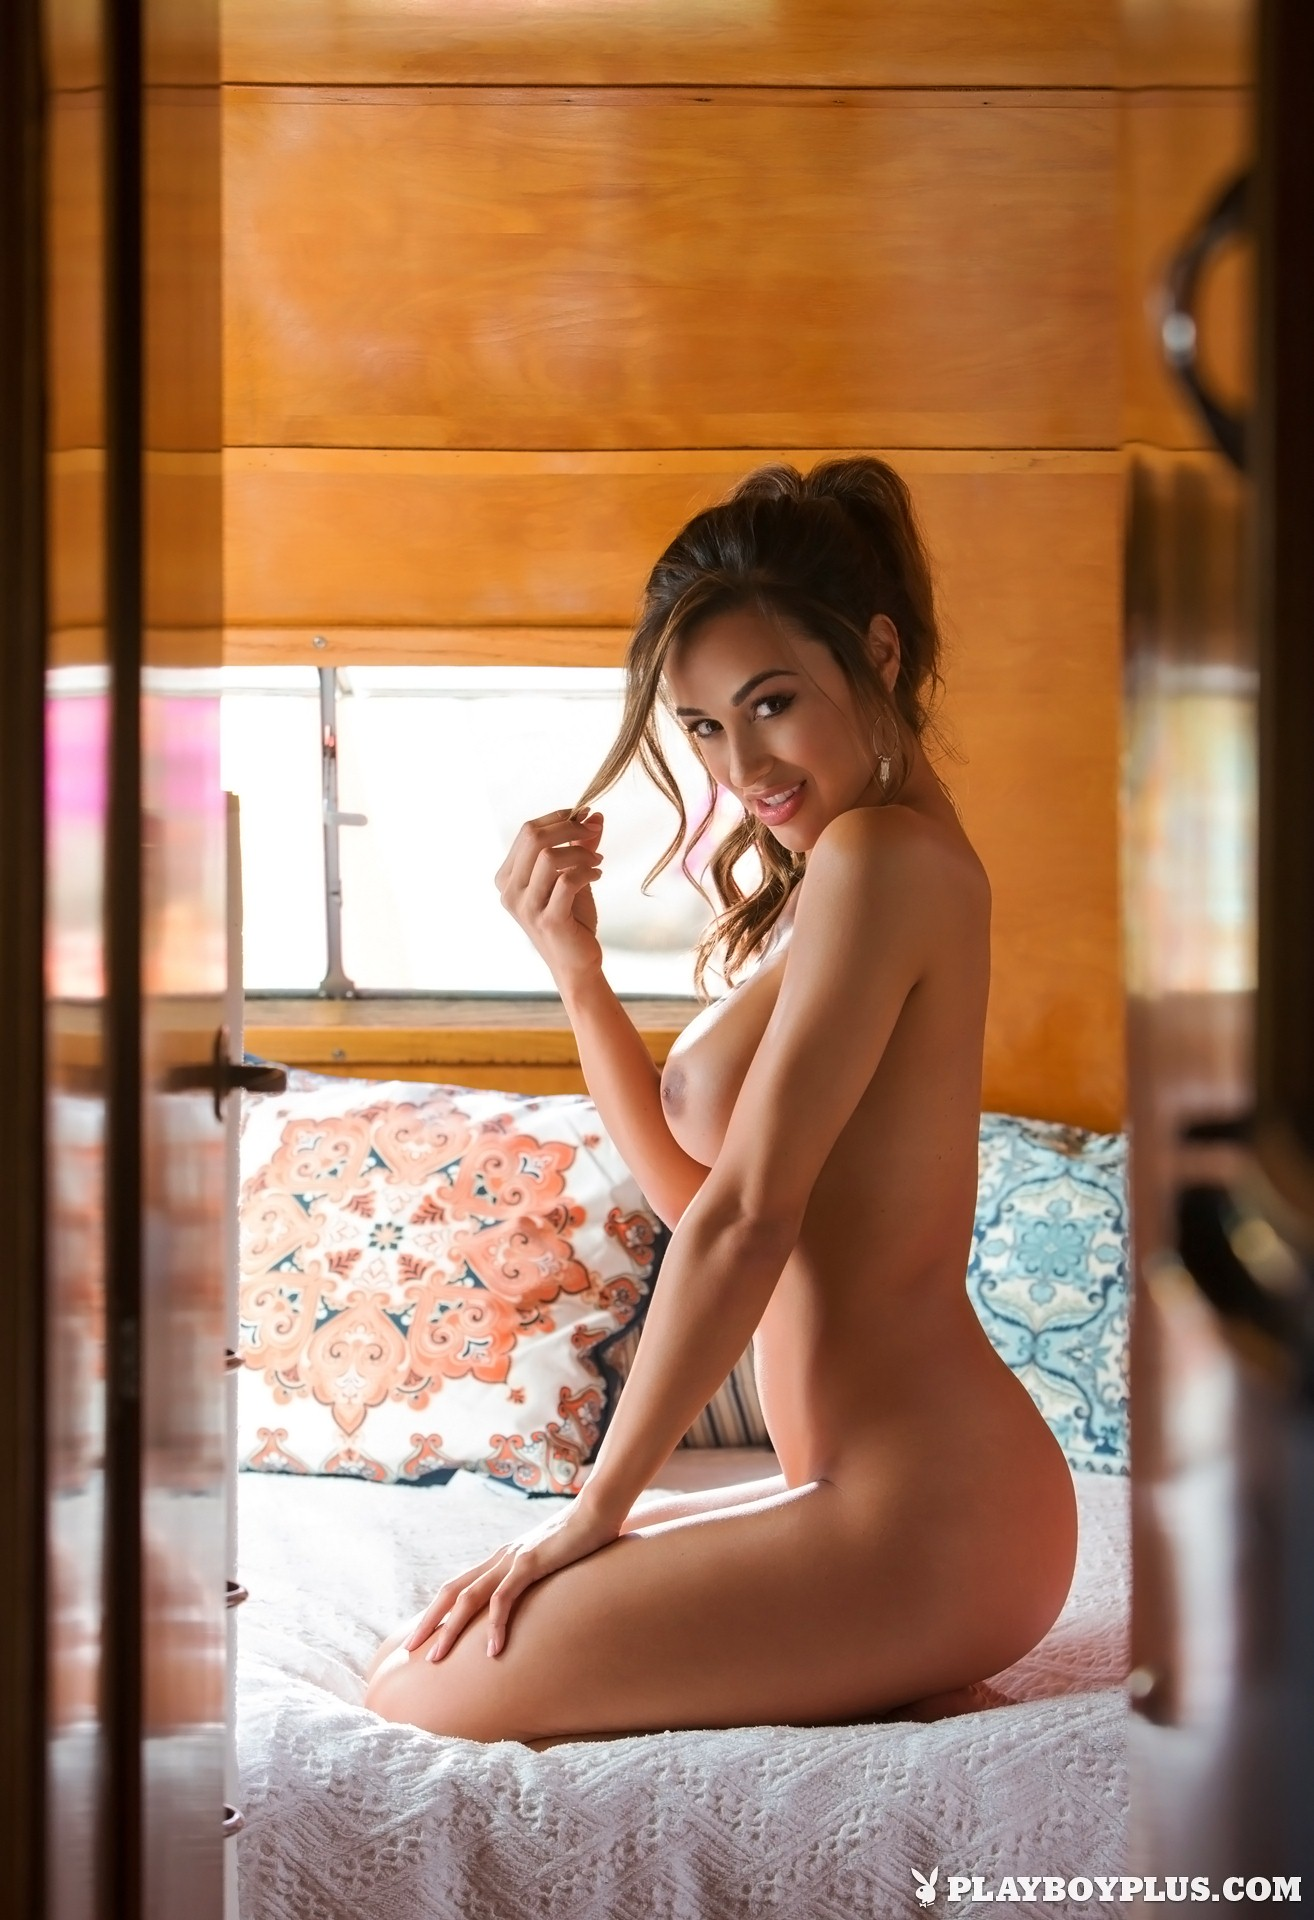 Ana Cheri Nude Strong Woman  A Tribute To Playboy-9540